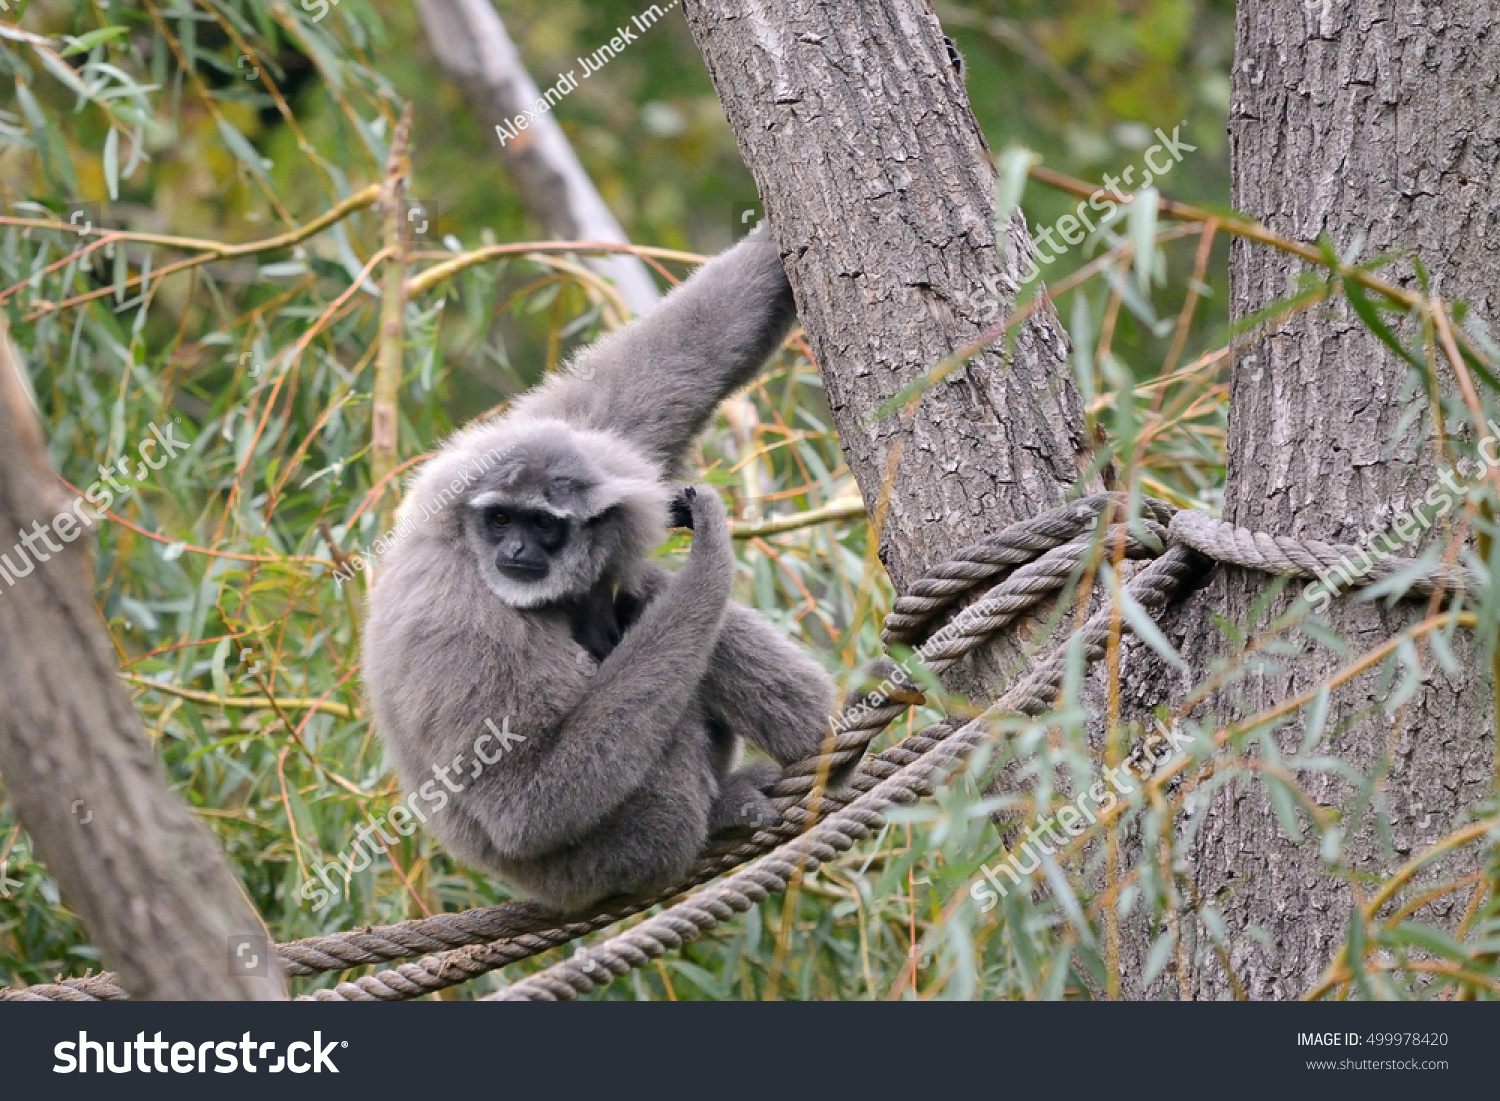 The silvery gibbon hylobates moloch on the tree